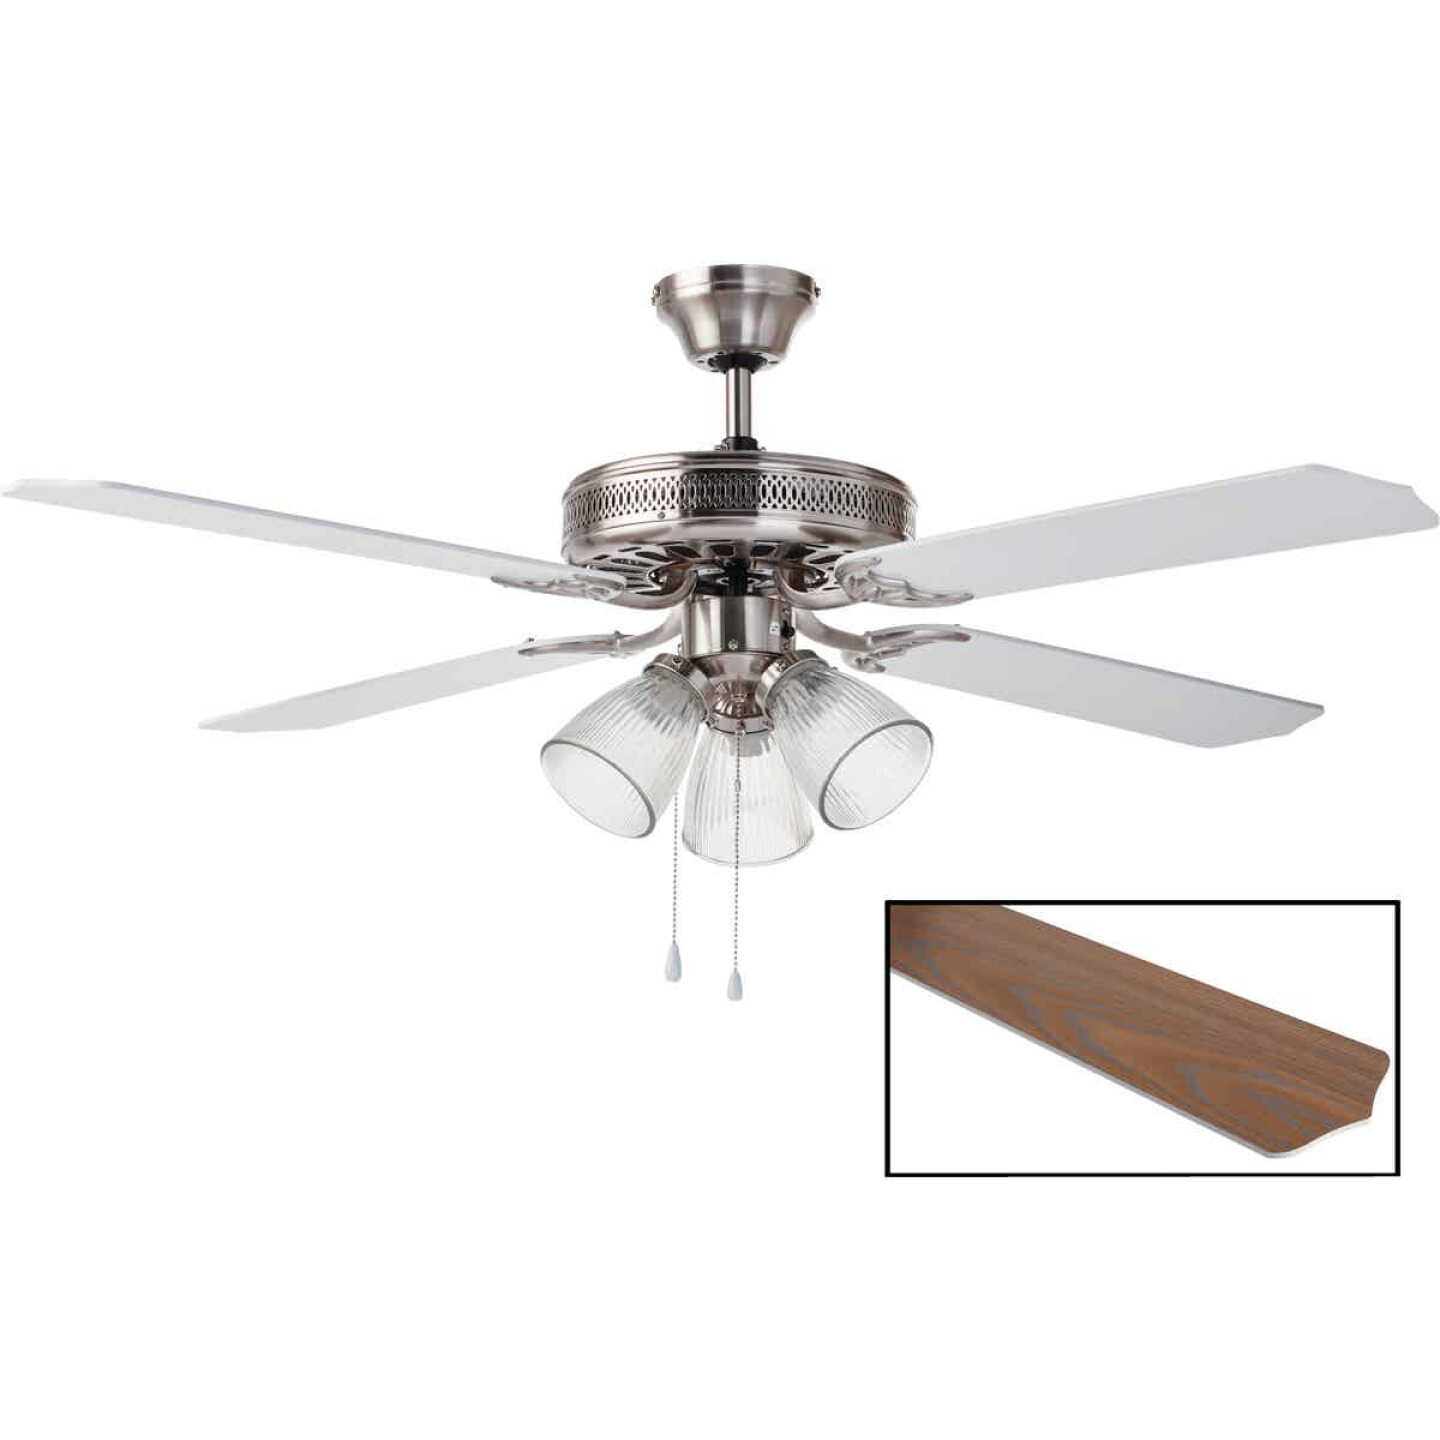 Home Impressions Chateau 52 In. Brushed Nickel Ceiling Fan with Light Kit Image 1